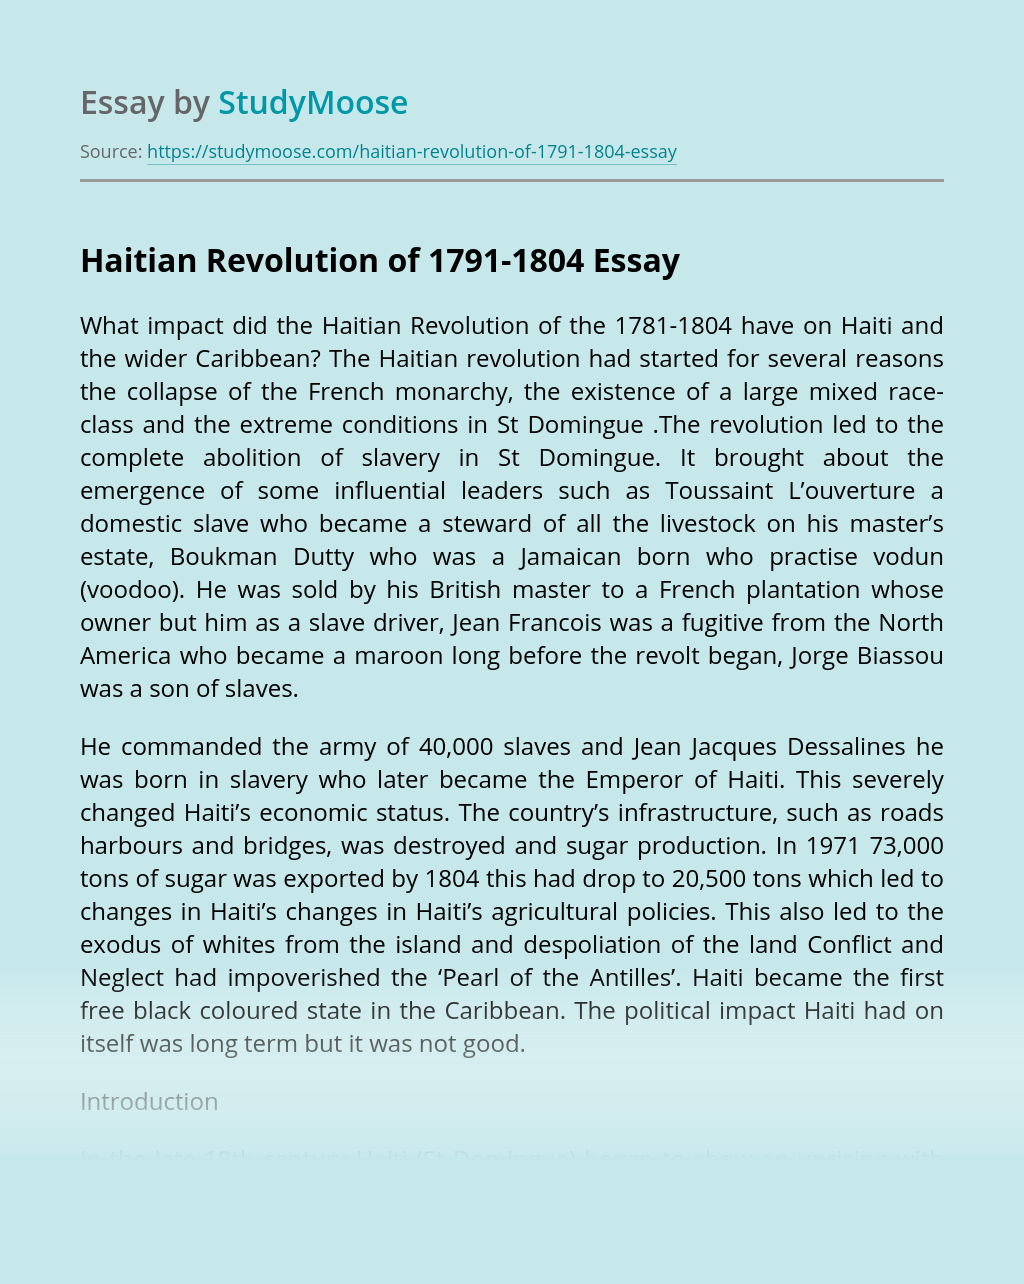 Haitian Revolution of 1791-1804